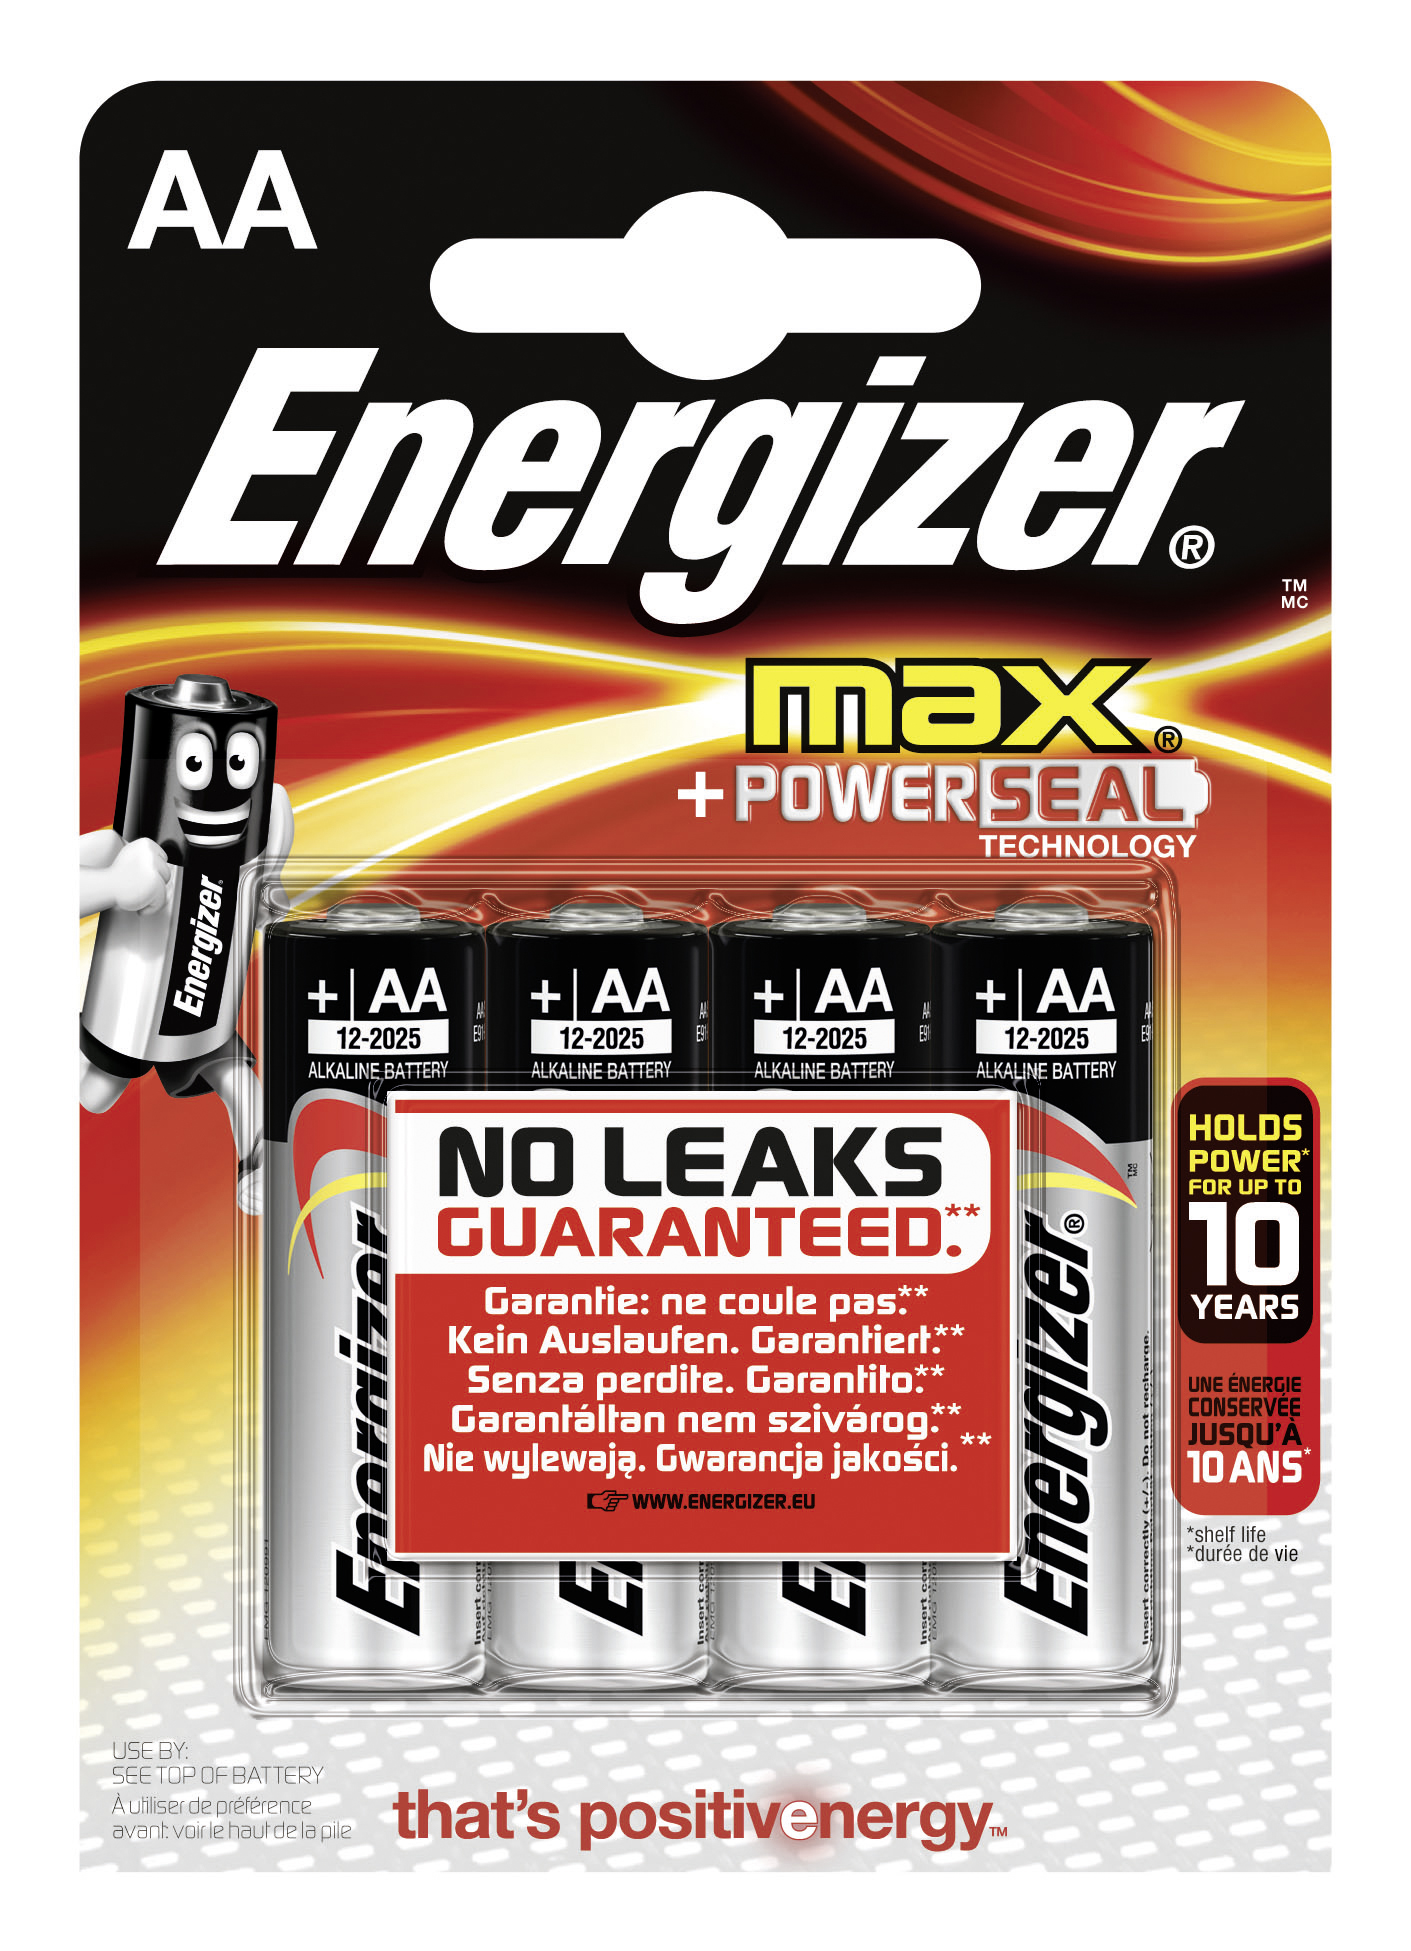 Energizer Max Powerseal